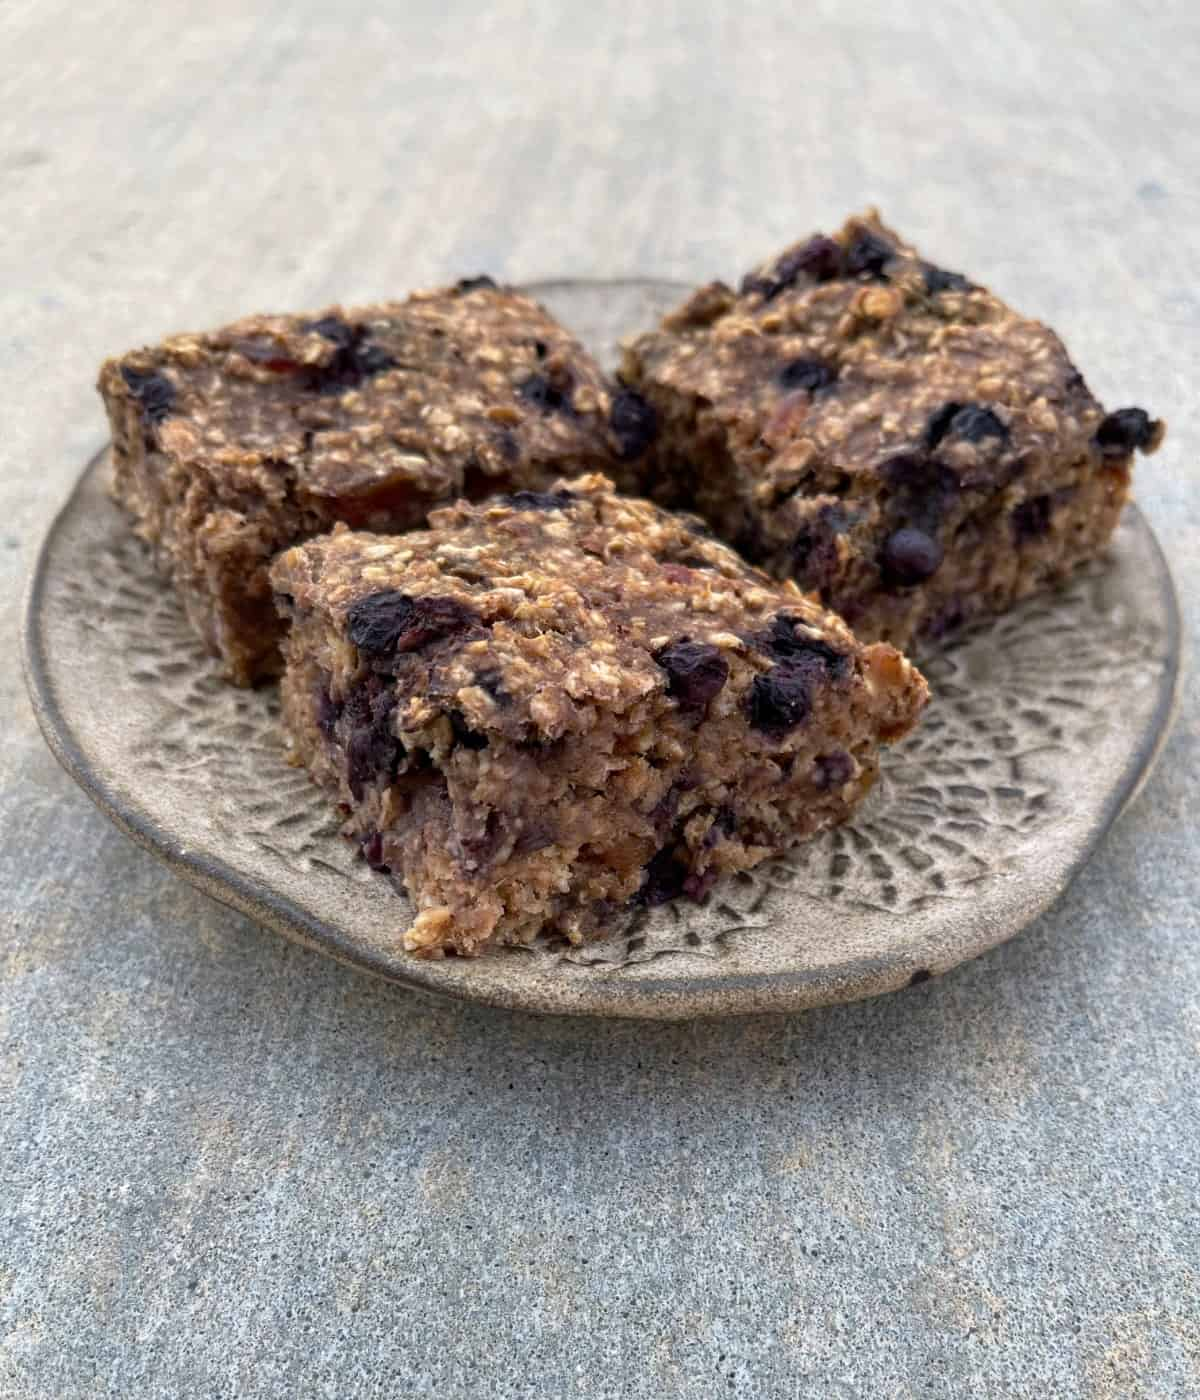 Blueberry banana baked oatmeal squares on ceramic plate.